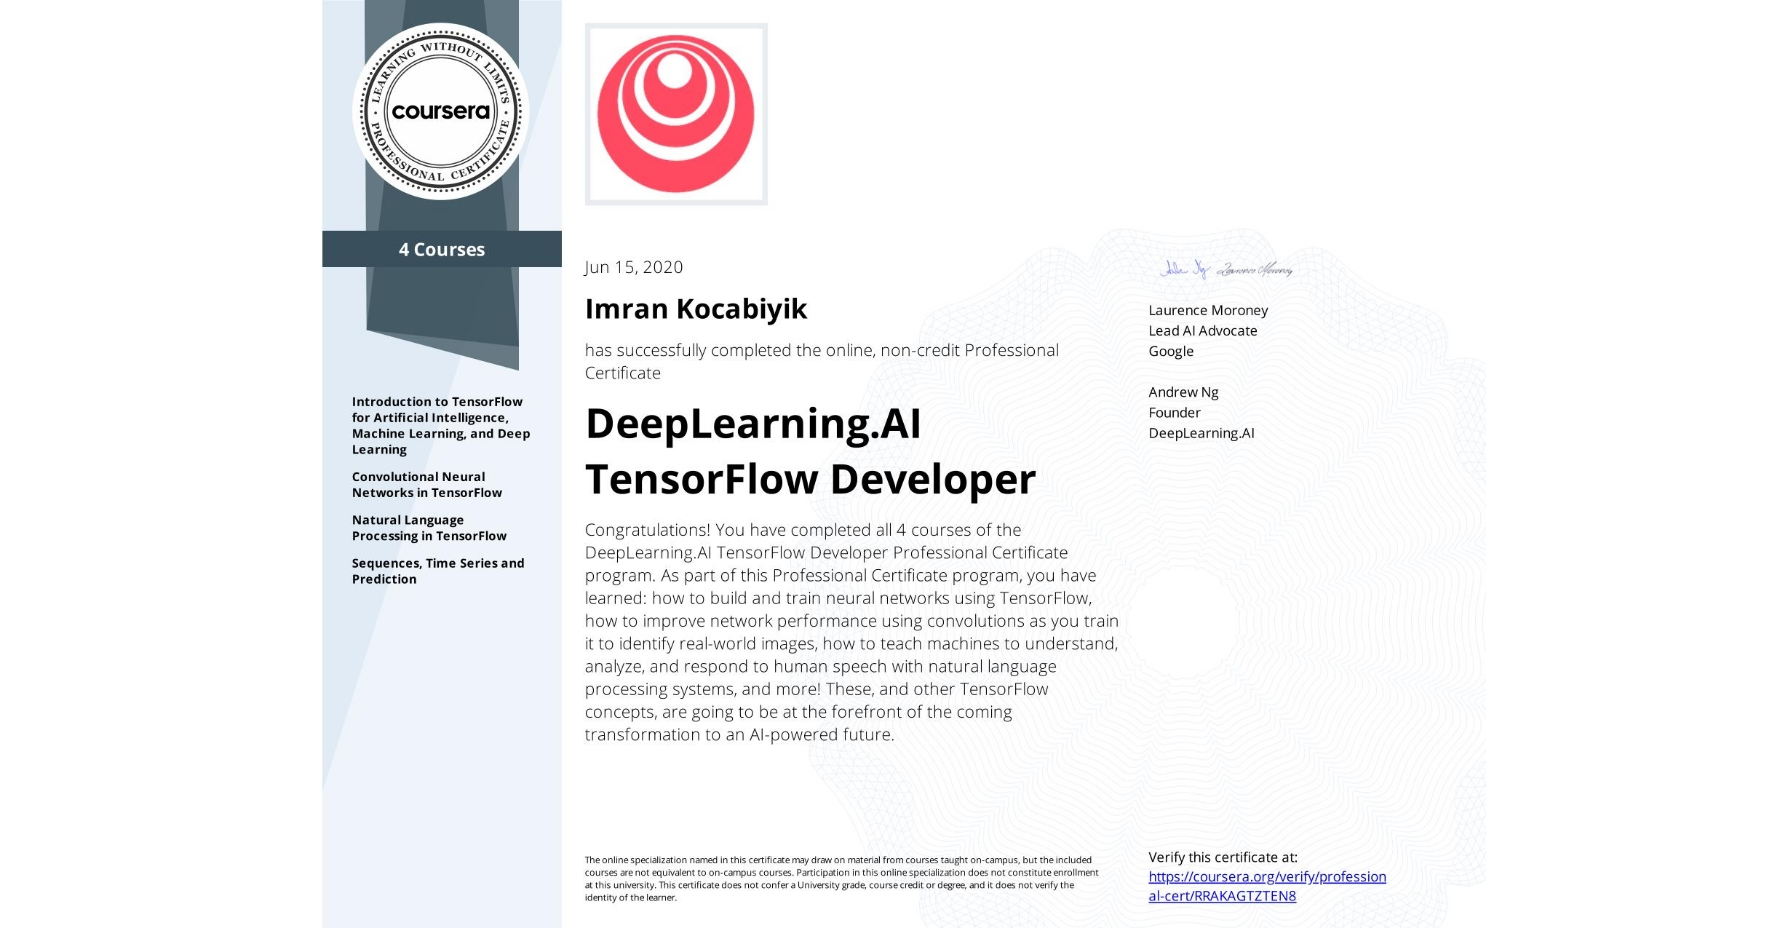 View certificate for Imran Kocabiyik, DeepLearning.AI TensorFlow Developer, offered through Coursera. Congratulations! You have completed all 4 courses of the DeepLearning.AI TensorFlow Developer Professional Certificate program.   As part of this Professional Certificate program, you have learned: how to build and train neural networks using TensorFlow, how to improve network performance using convolutions as you train it to identify real-world images, how to teach machines to understand, analyze, and respond to human speech with natural language processing systems, and more!  These, and other TensorFlow concepts, are going to be at the forefront of the coming transformation to an AI-powered future.